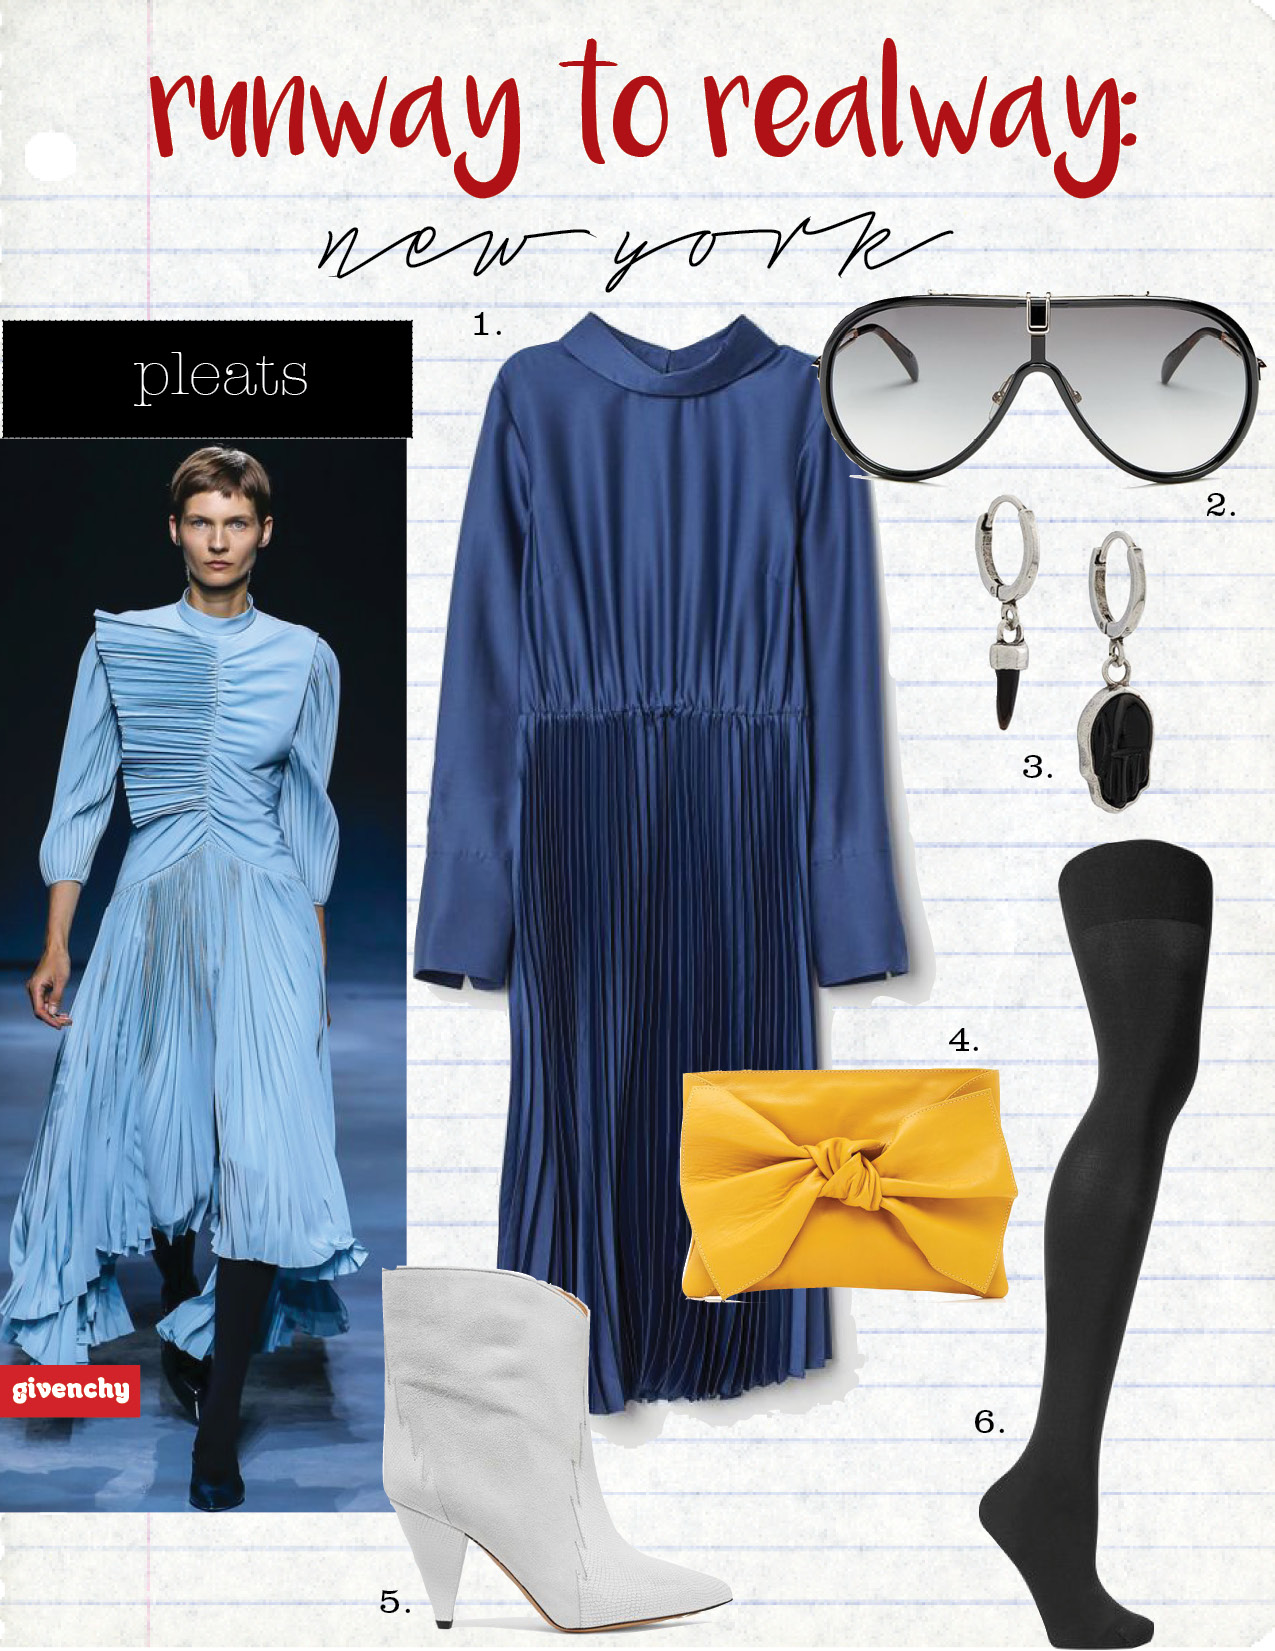 1. h&m pleated dress, $59,  hm.com  2. givenchy shield sunglasses, $450,  bloomingdales.com  3. Isabel Marant buffalo horn pendant earrings, $67,  farfetch.com  4. Ulla Johnson tali clutch, $297,  shopbop.com  5. Isabel Marant leider suede and leather ankle boots, $1025,  net-a-porter.com  6. spanx luxe tights, $38,  net-a-porter.com